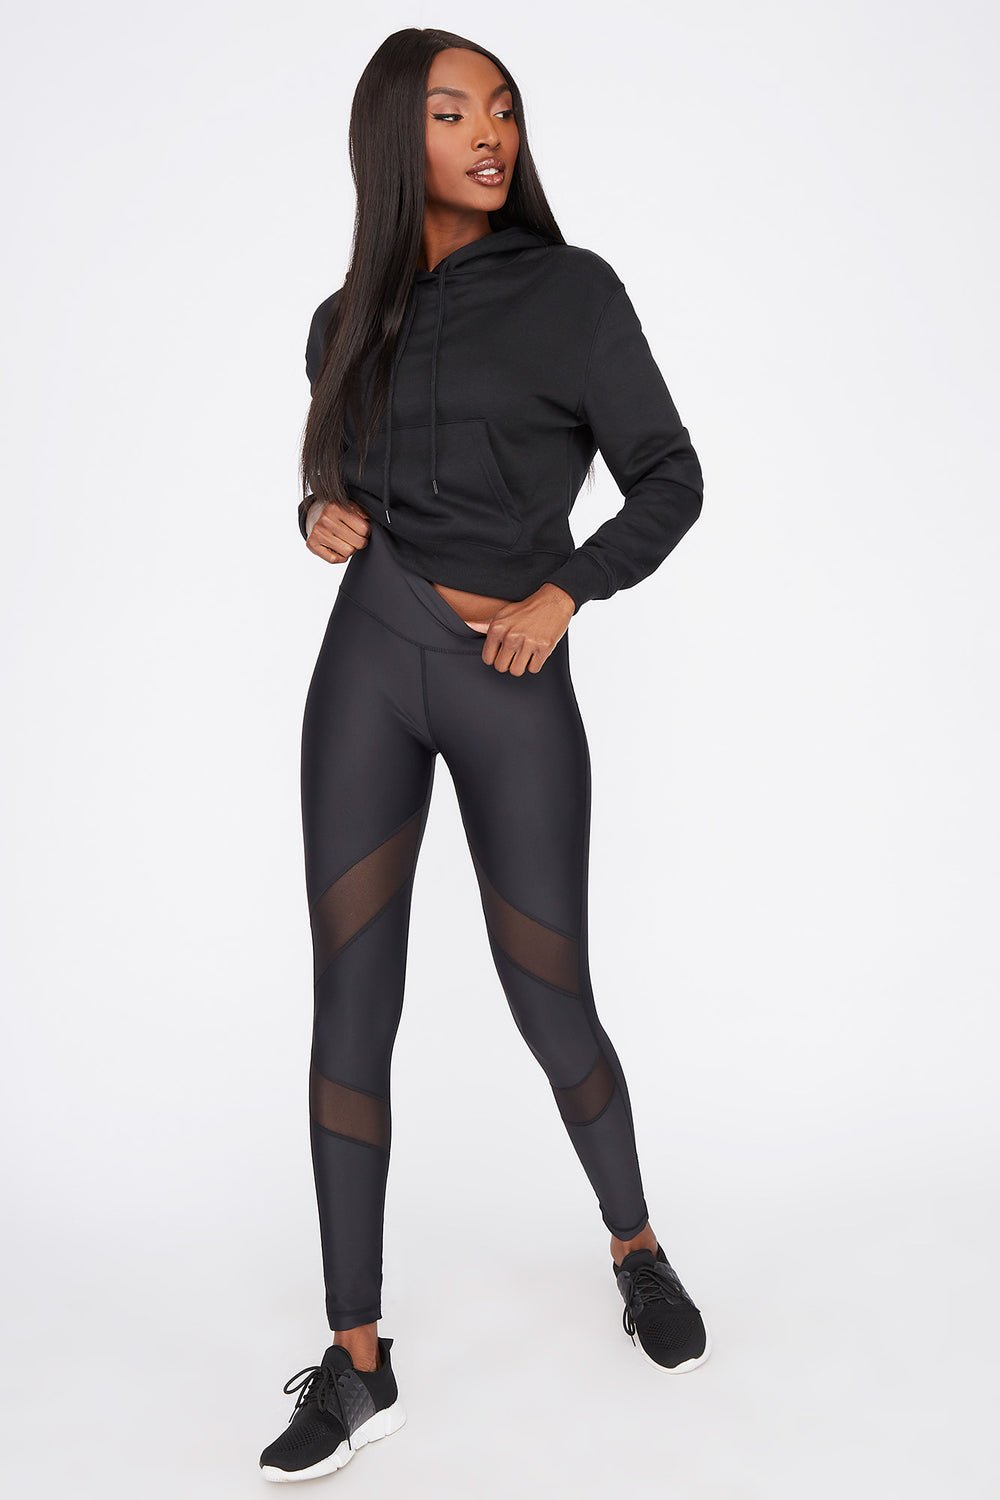 Infinite High-Rise Mesh Panel Active Legging Black